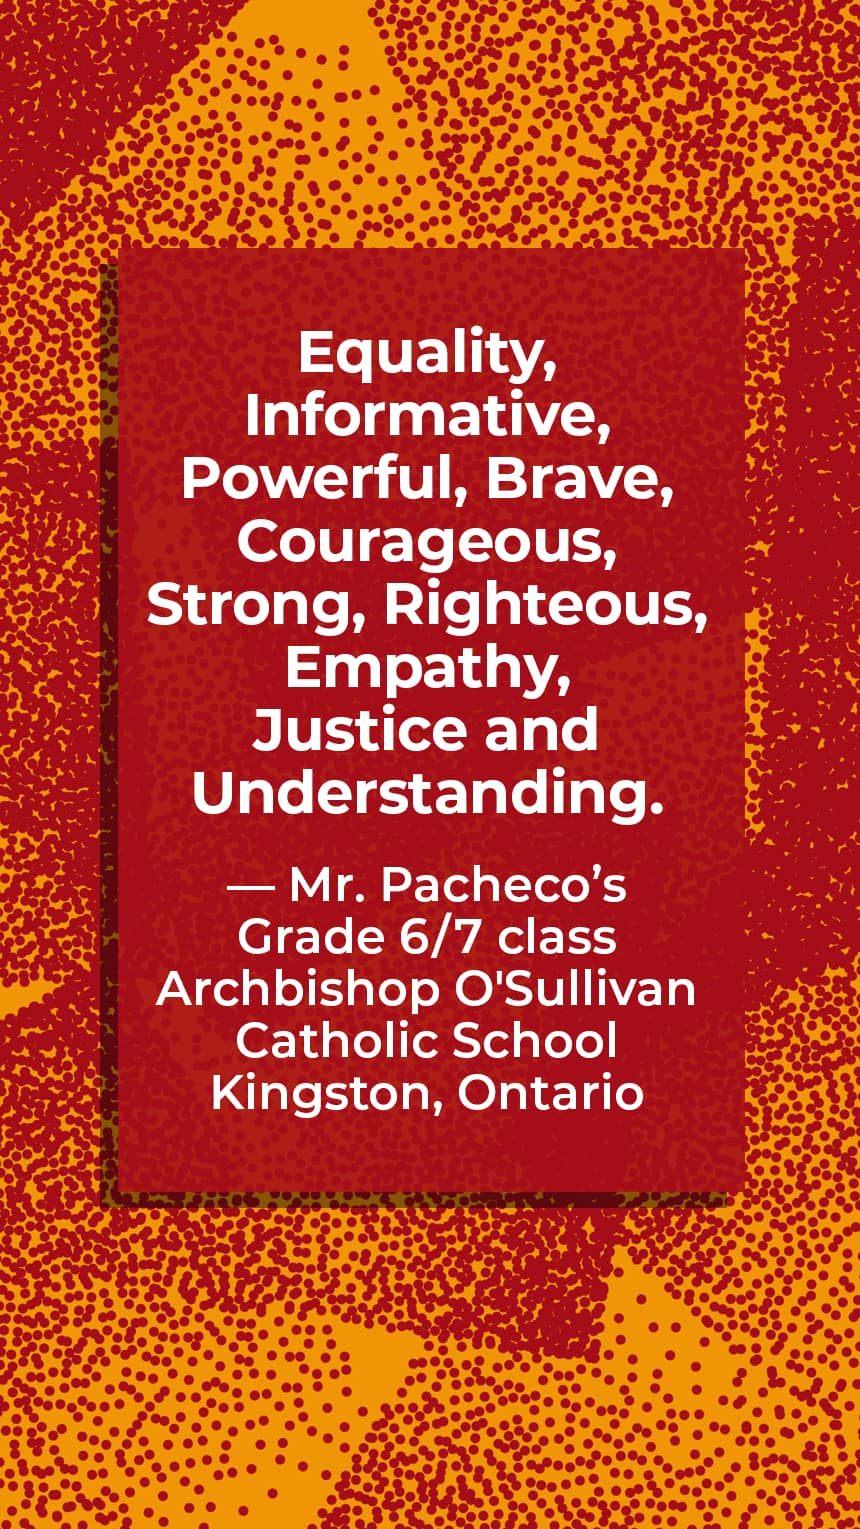 """""""Equality, Informative, Powerful, Brave, Courageous, Strong, Righteous, Empathy, Justice and Understanding."""" Mr. Pacheco's Grade 6/7 class Archbishop O'Sullivan Catholic School Kingston, Ontario"""